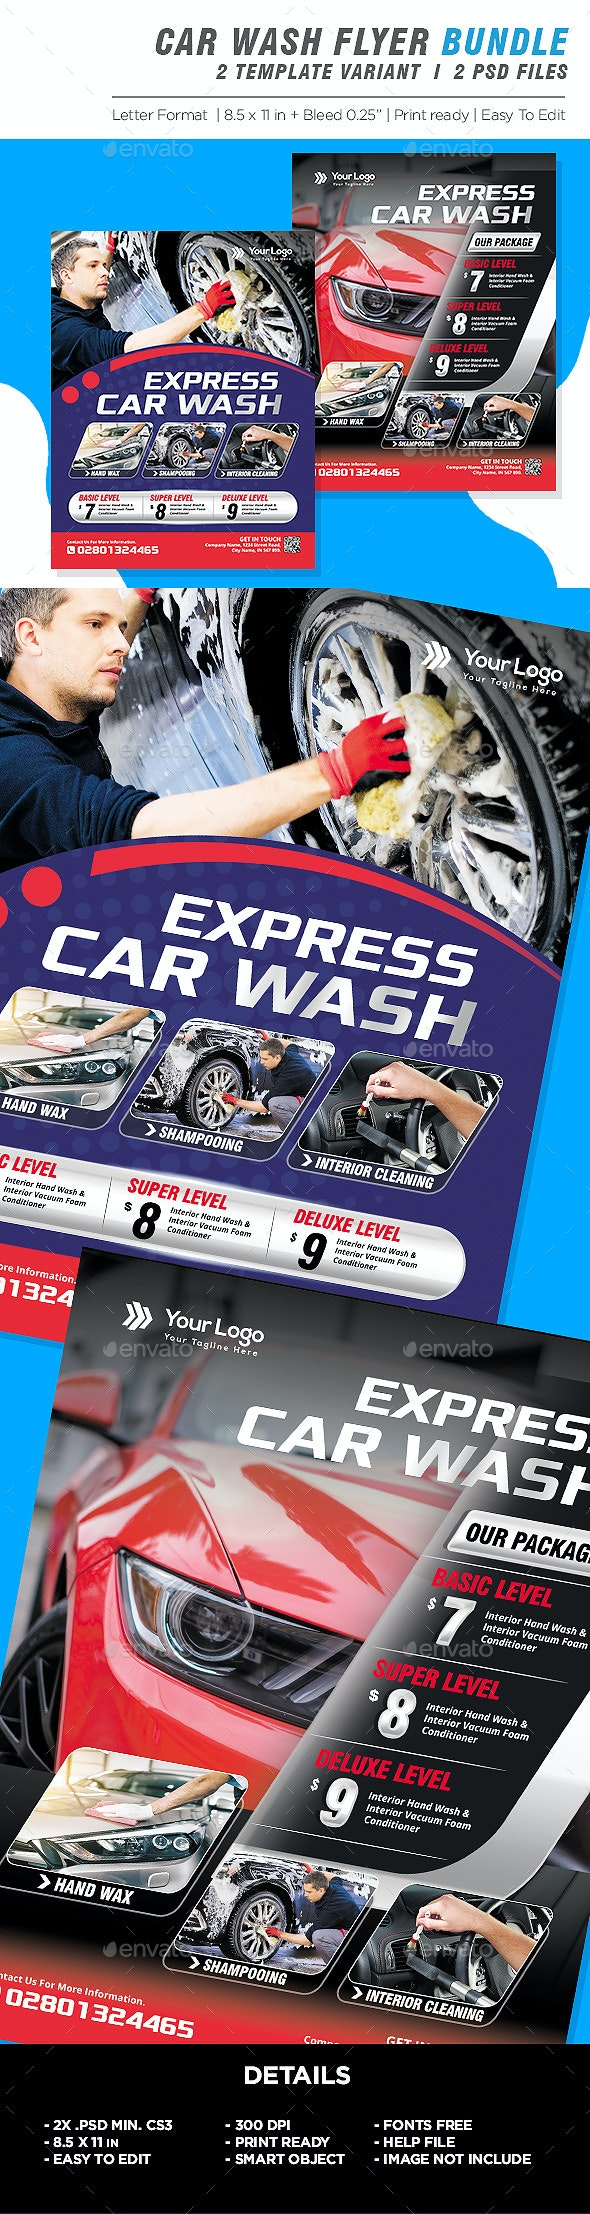 Car Wash Flyer Bundle - Corporate Flyers